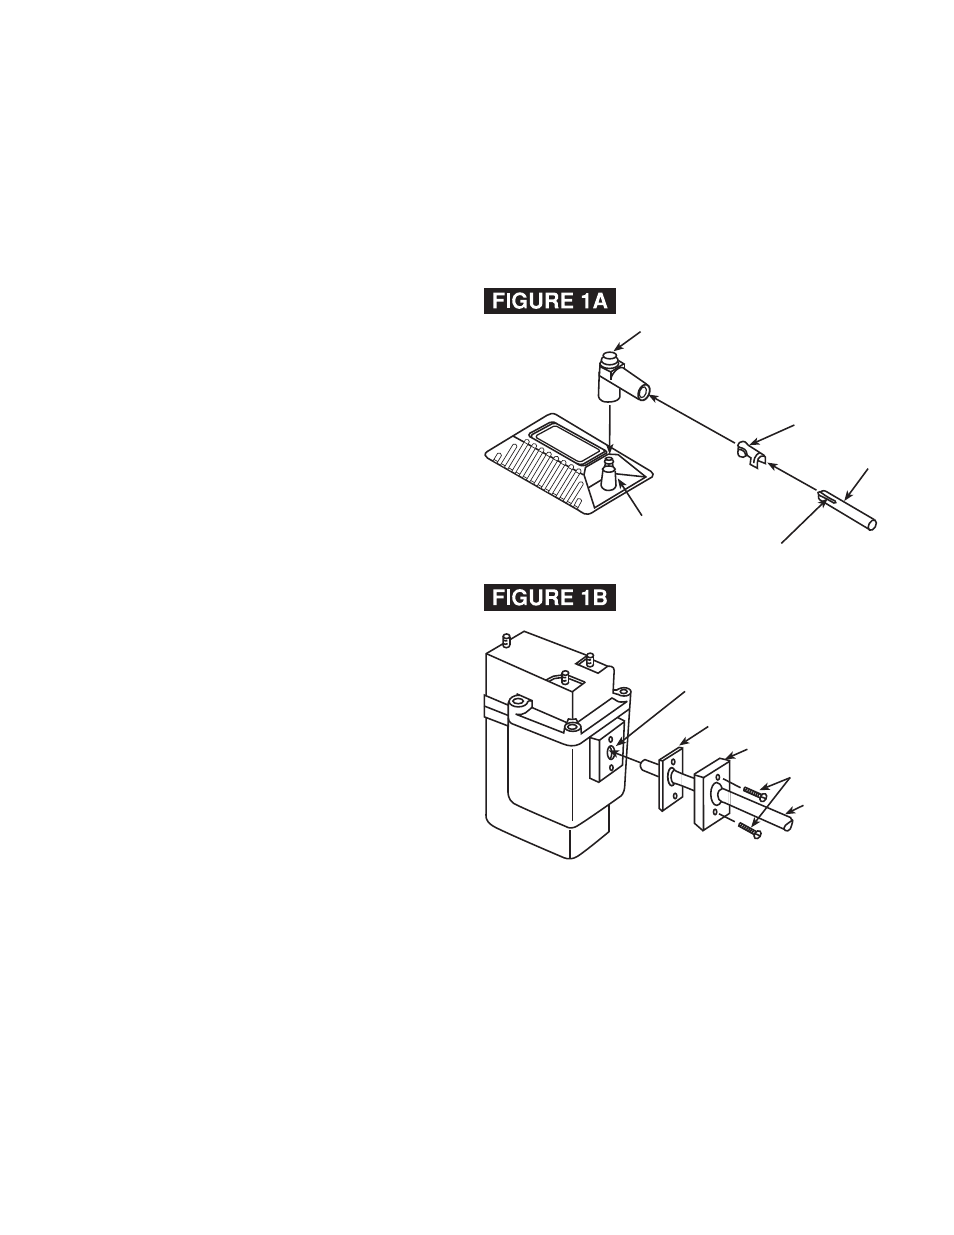 hight resolution of mallory voltmaster wiring diagram detailed schematics mallory hei distributor wiring diagram mallory unilite wiring diagram